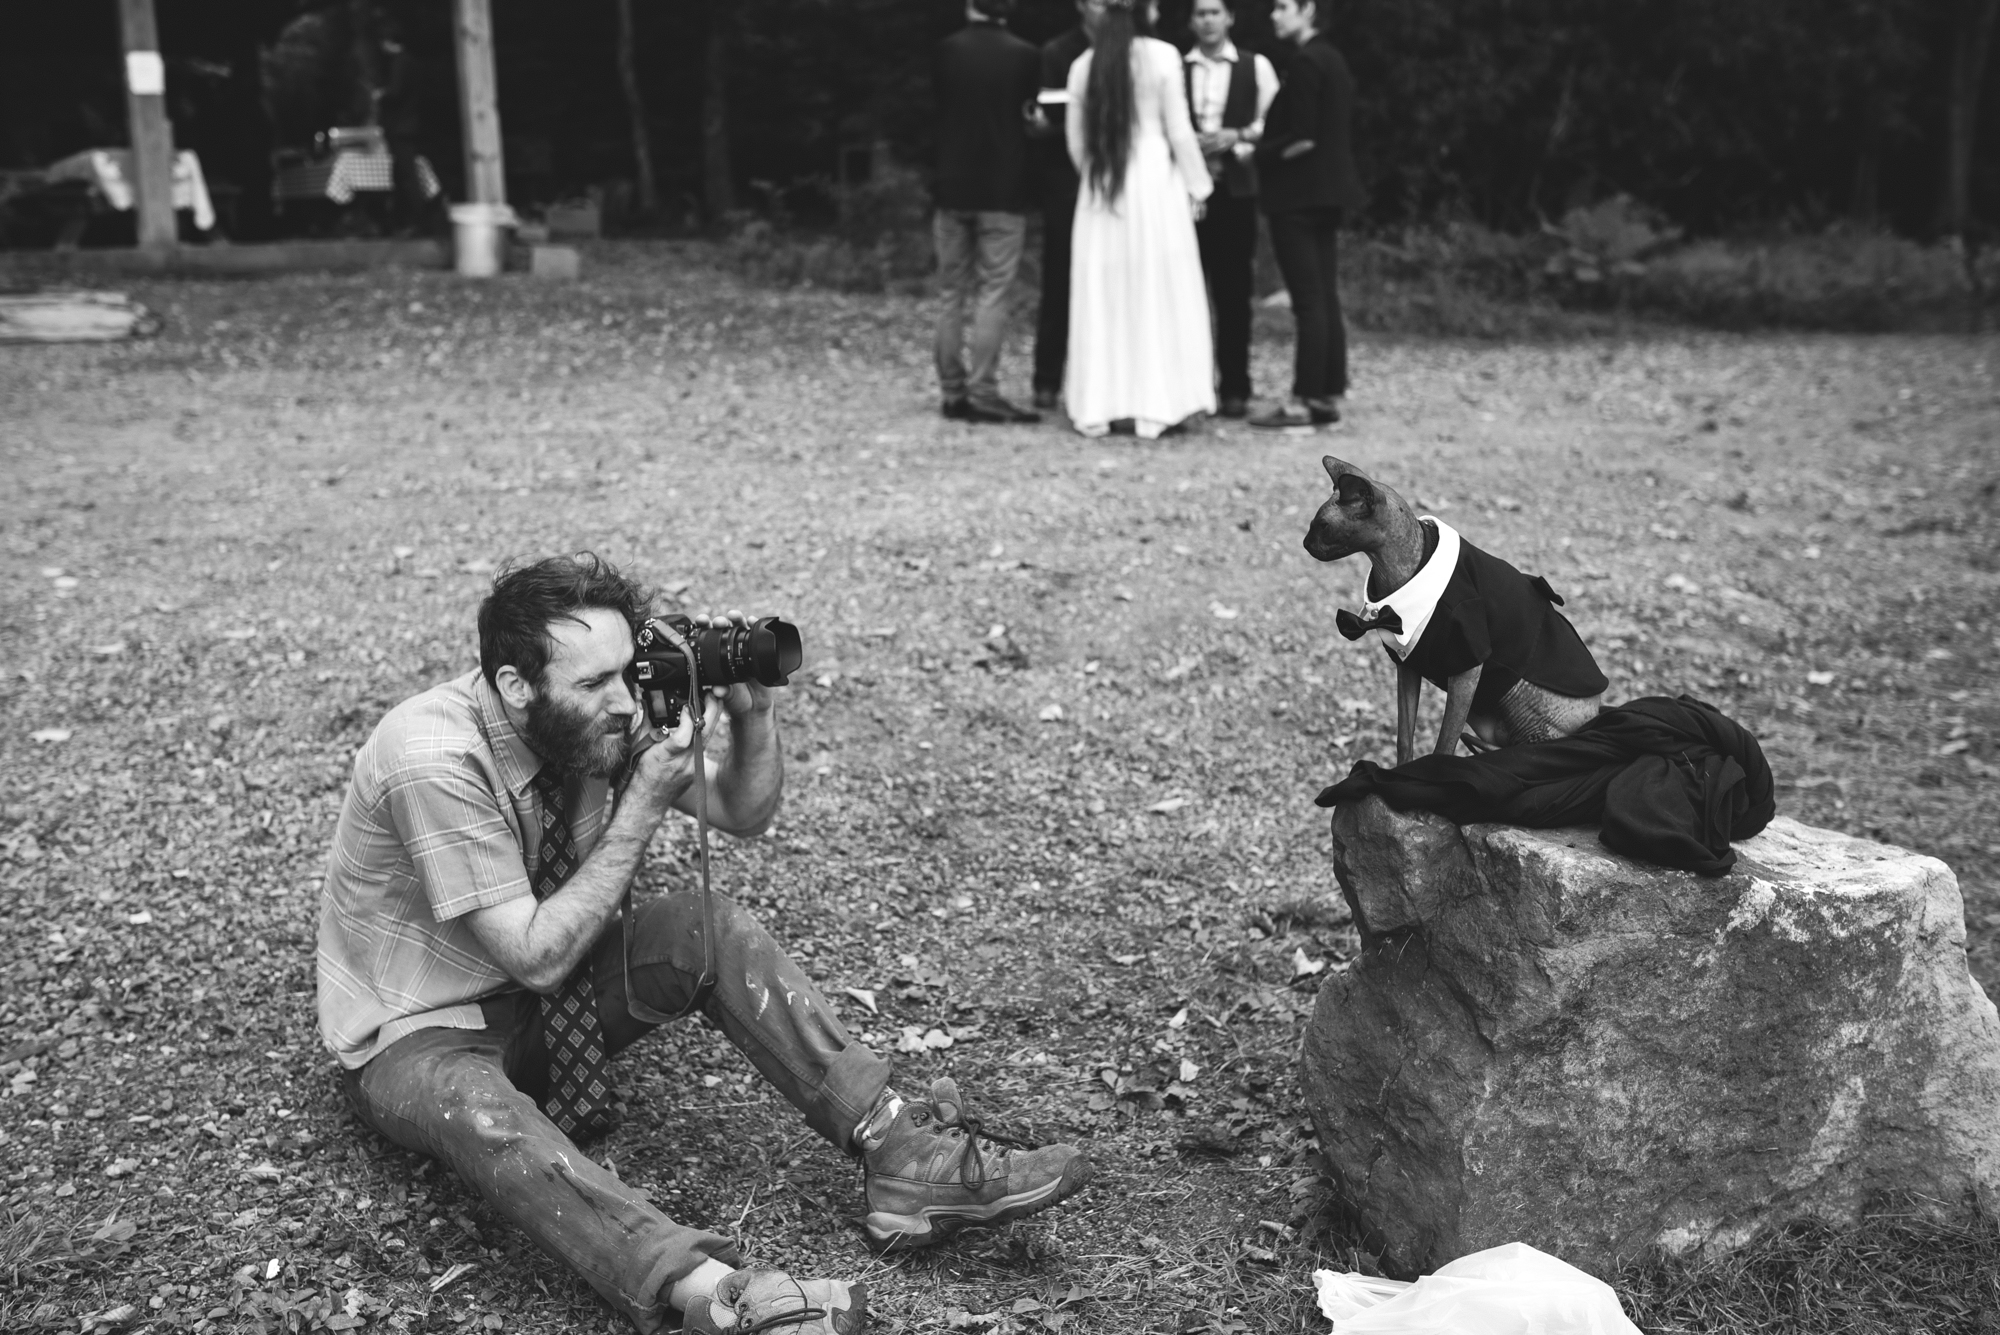 Mountain Wedding, Outdoors, Rustic, West Virginia, Maryland Wedding Photographer, DIY, Casual, Wedding Guests taking photo of cat in bowtie, Pets, Black and White Photo